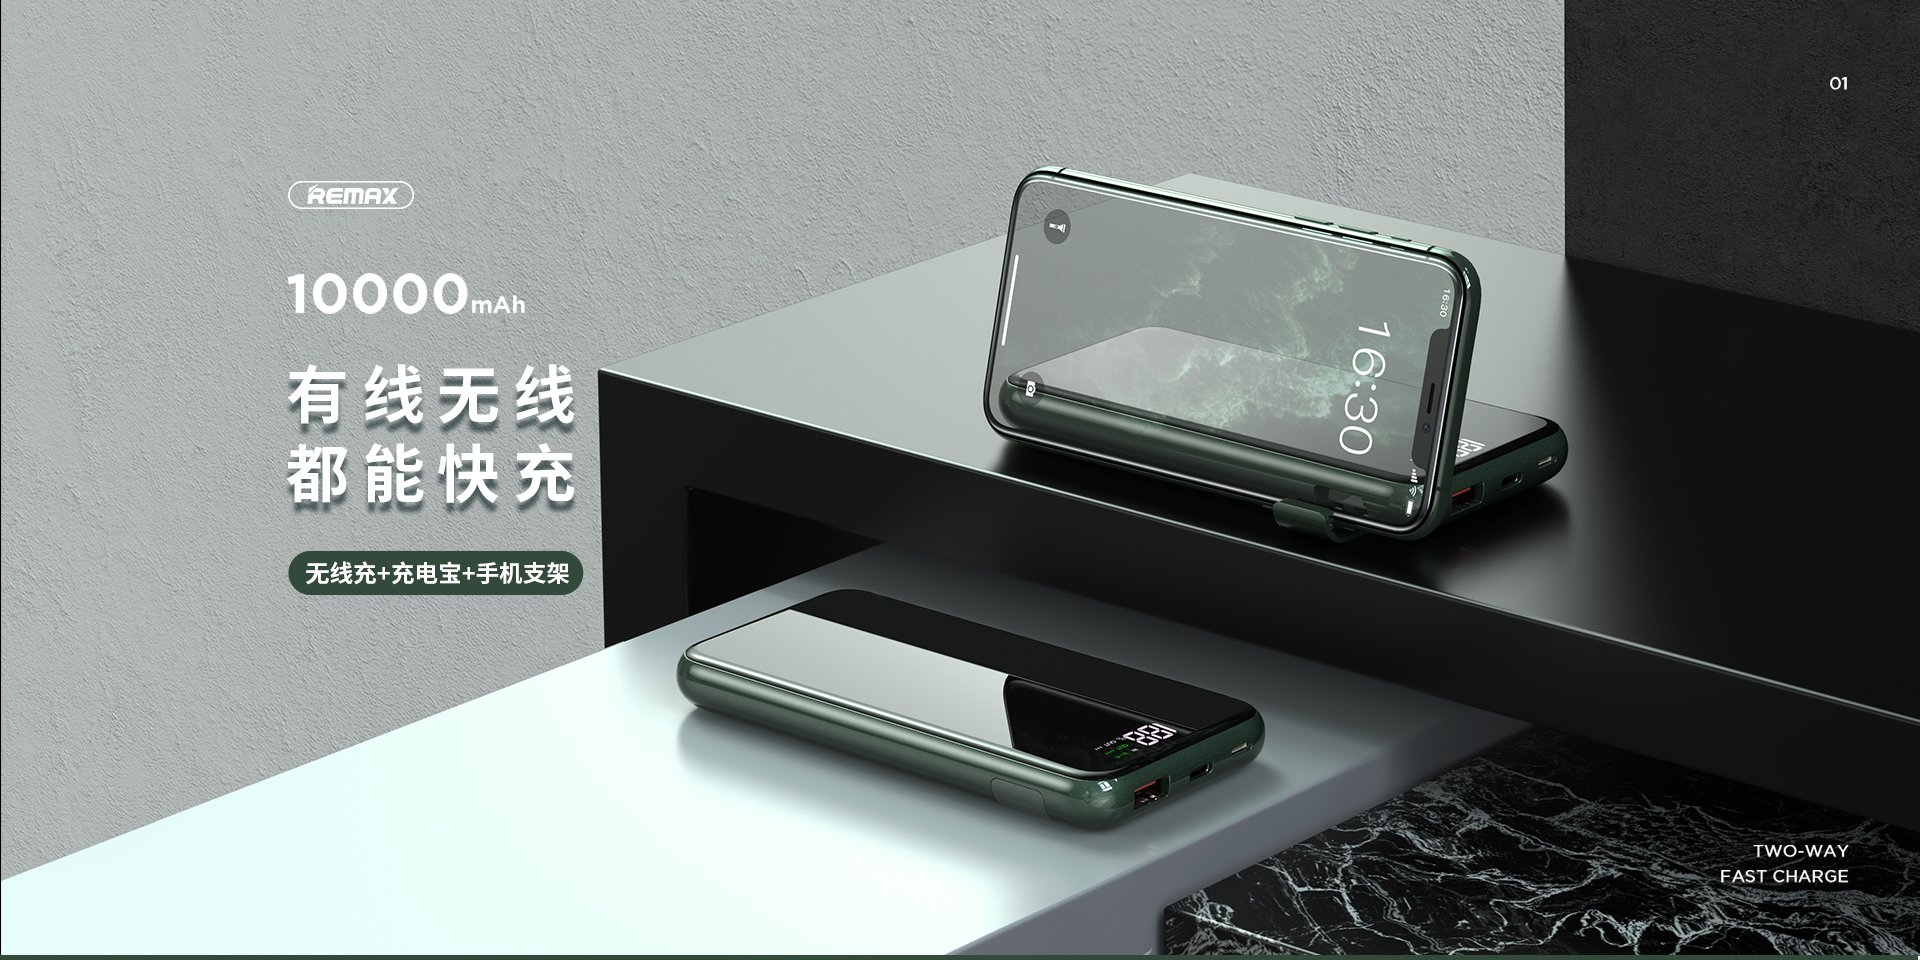 REMAX RPP 2 SINYO SERIES 18W PD QC3.0 10000MAH WIRELESS FAST CHARGE POWER BANK WITH BUILT IN PHONE HOLDER 1